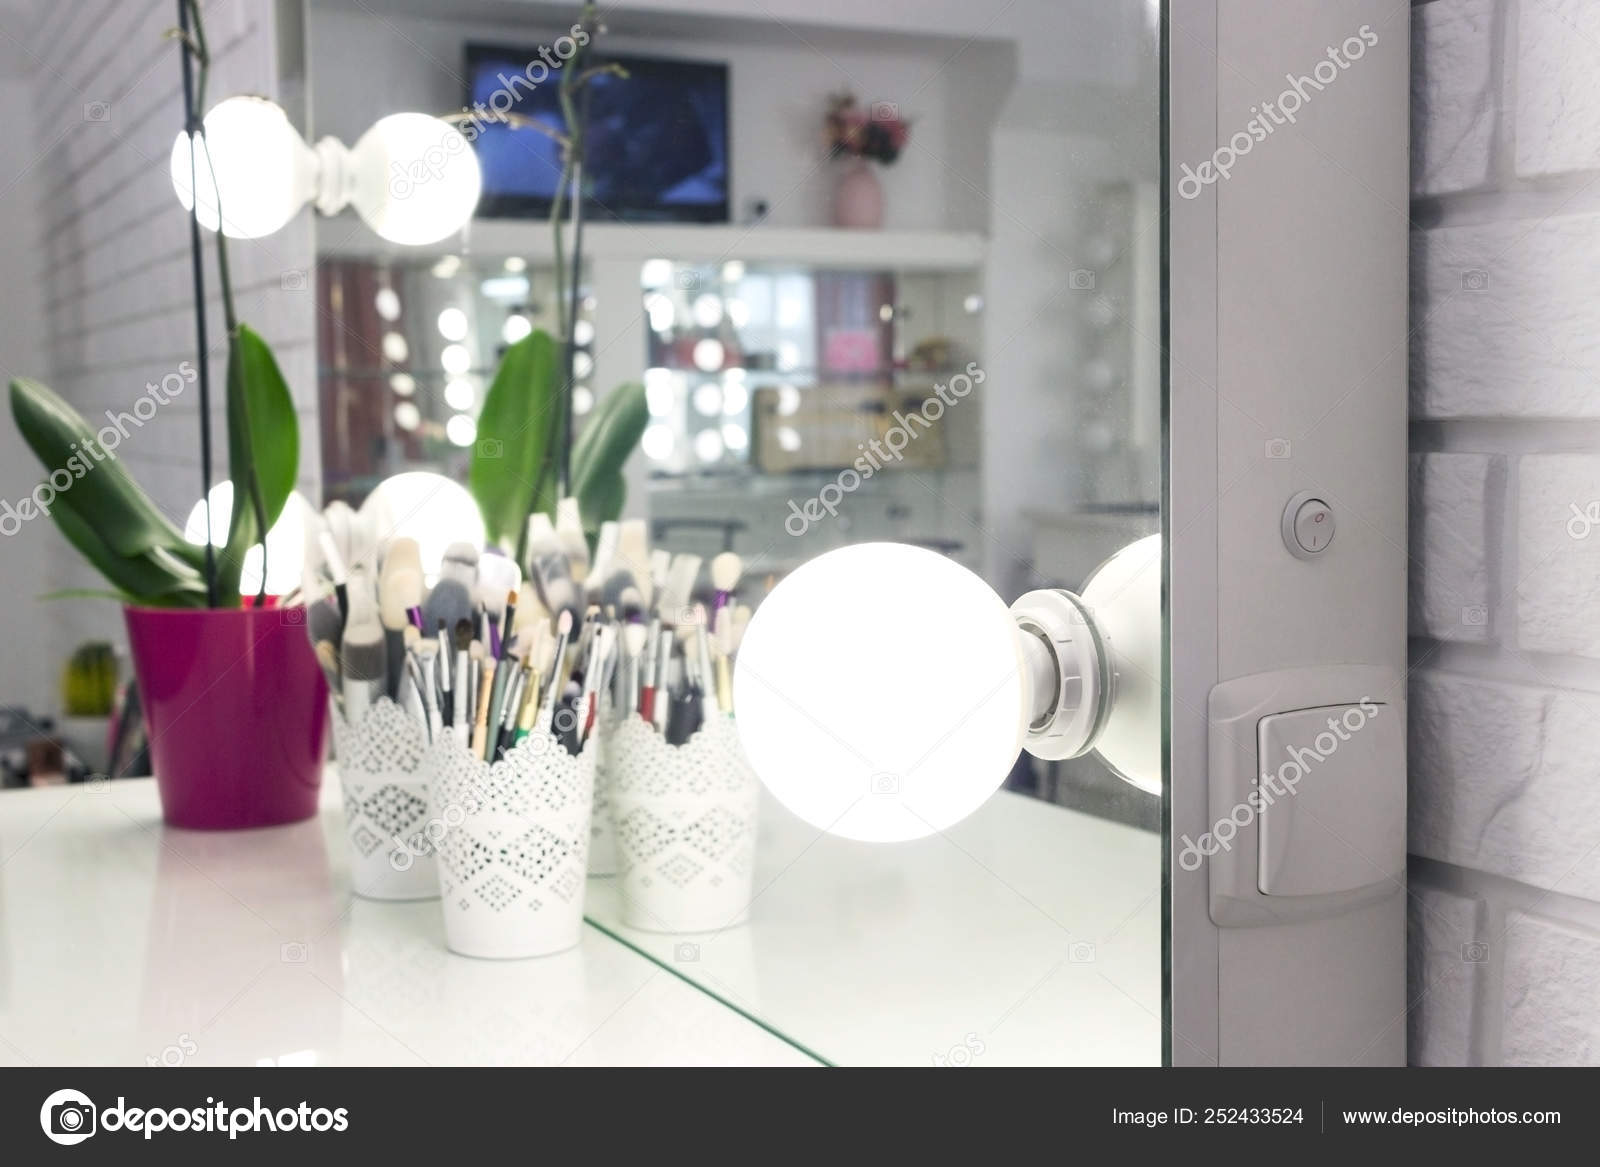 Interior Of A Beauty Salon Room With Makeup Mirror Lights And Black Chair Stock Photo Image By C Kirilyukrm Yahoo Com 252433524